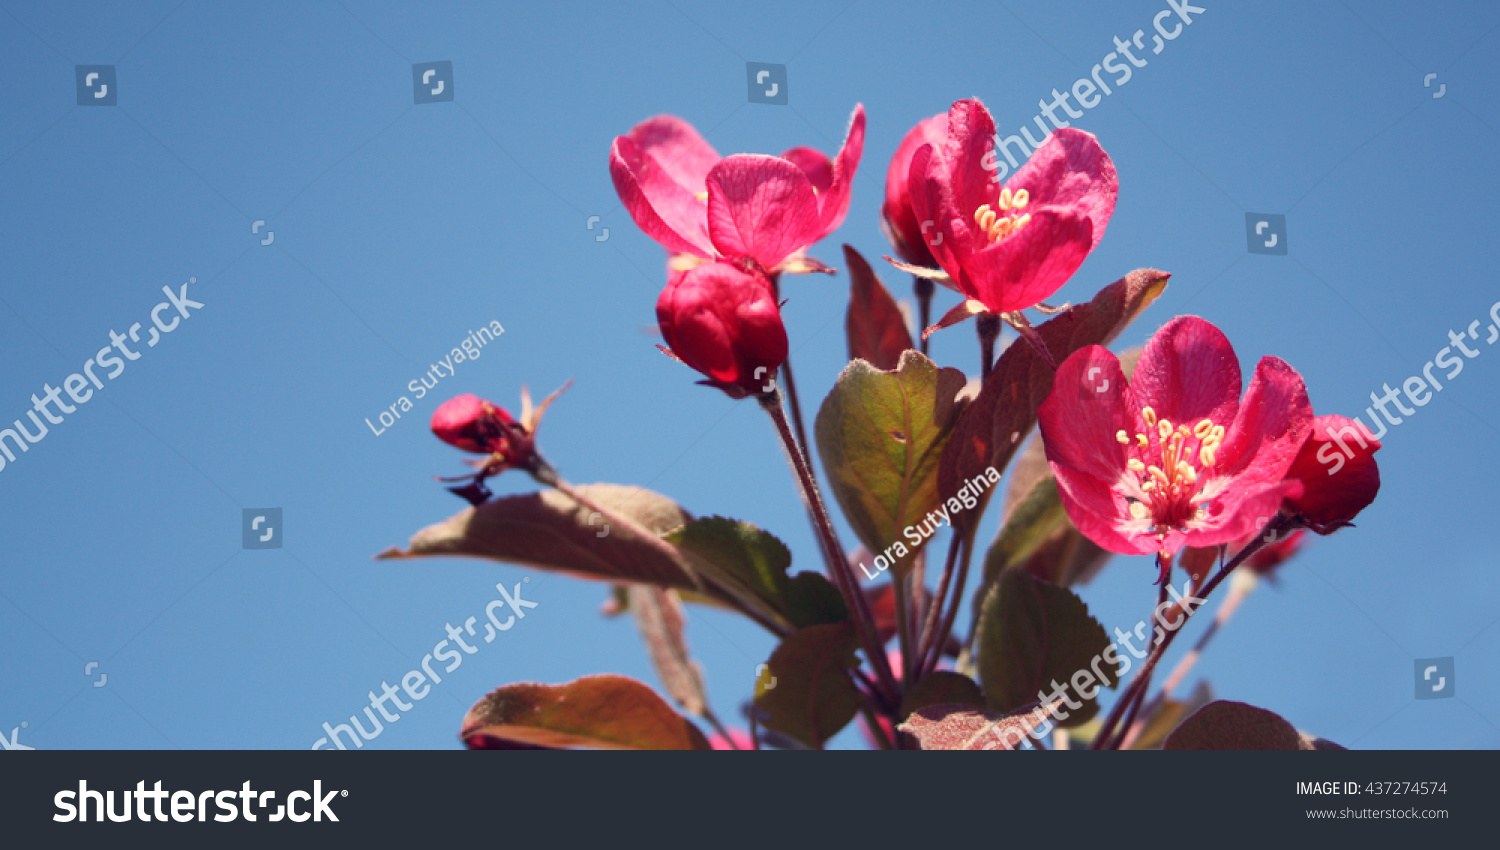 Pink Apple Flowers Bloom Spring Aged Stock Photo Download Now